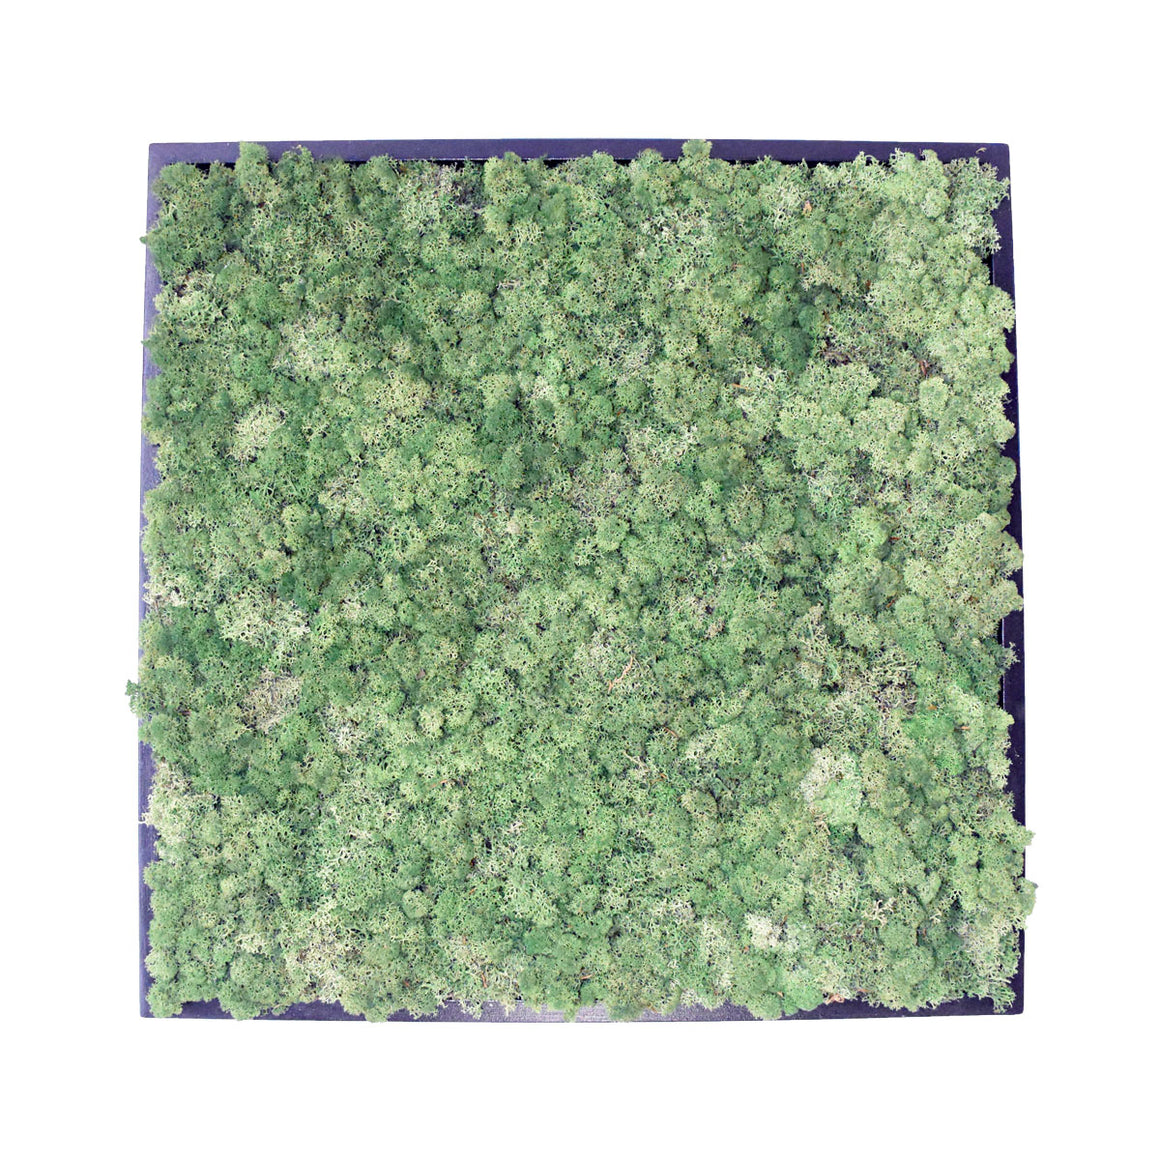 Green Wall - Preserved Reindeer Moss